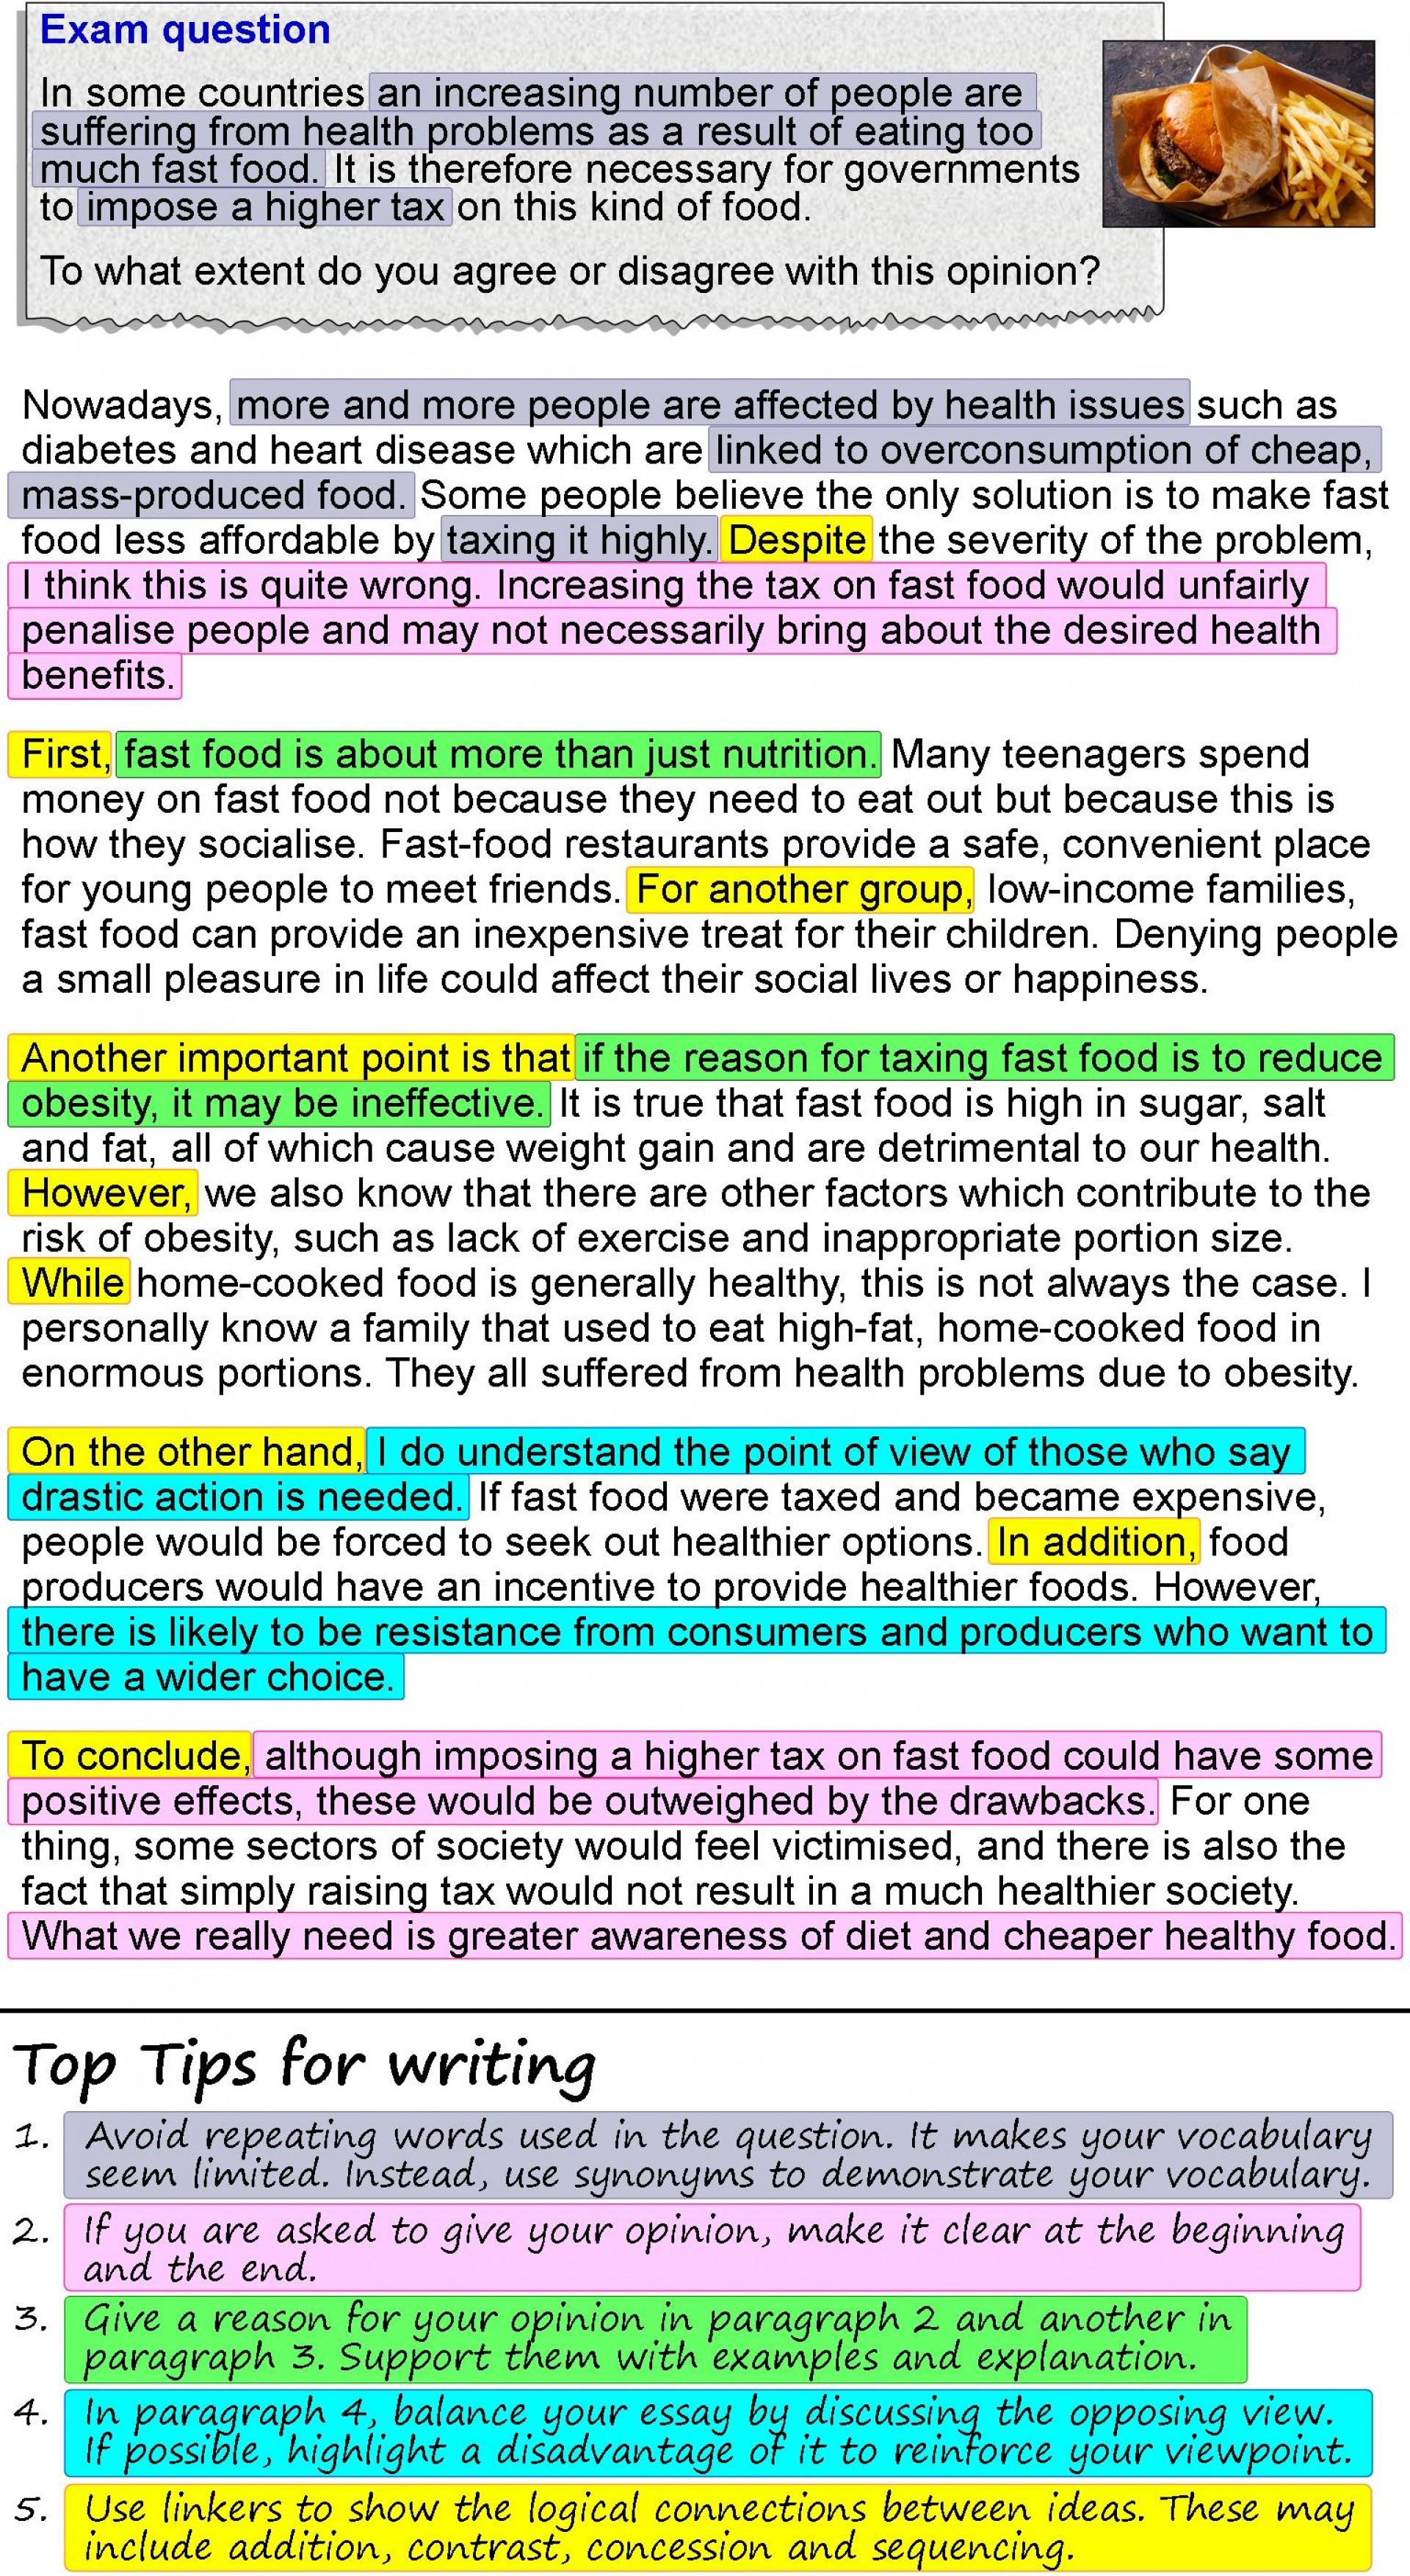 002 Essay Example Healthy Food An Opinion About Fast 4 Best On For Class 10 My Favourite 1 In Tamil 1920